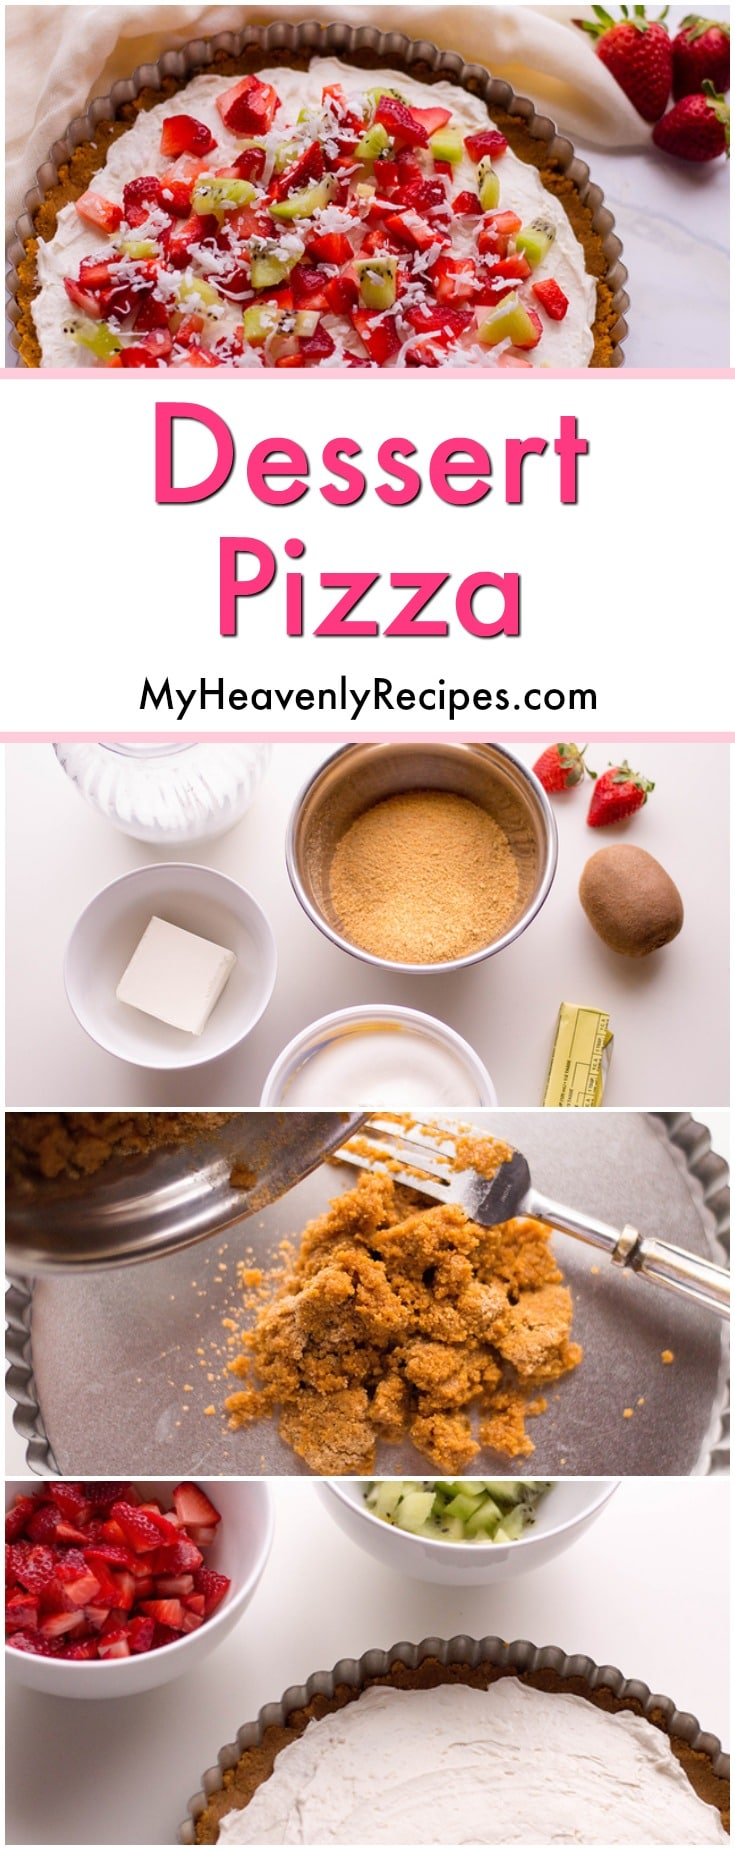 Looking for a super SIMPLE and EASY Dessert Pizza Recipe? Look no further! The hardest part to this tasty recipe is chopping the fruit and waiting for the crust to cool! Serve this beautiful dessert at your next party! #dessert #pizza #recipe #myheavenlyrecipes @heavenlyrecipe